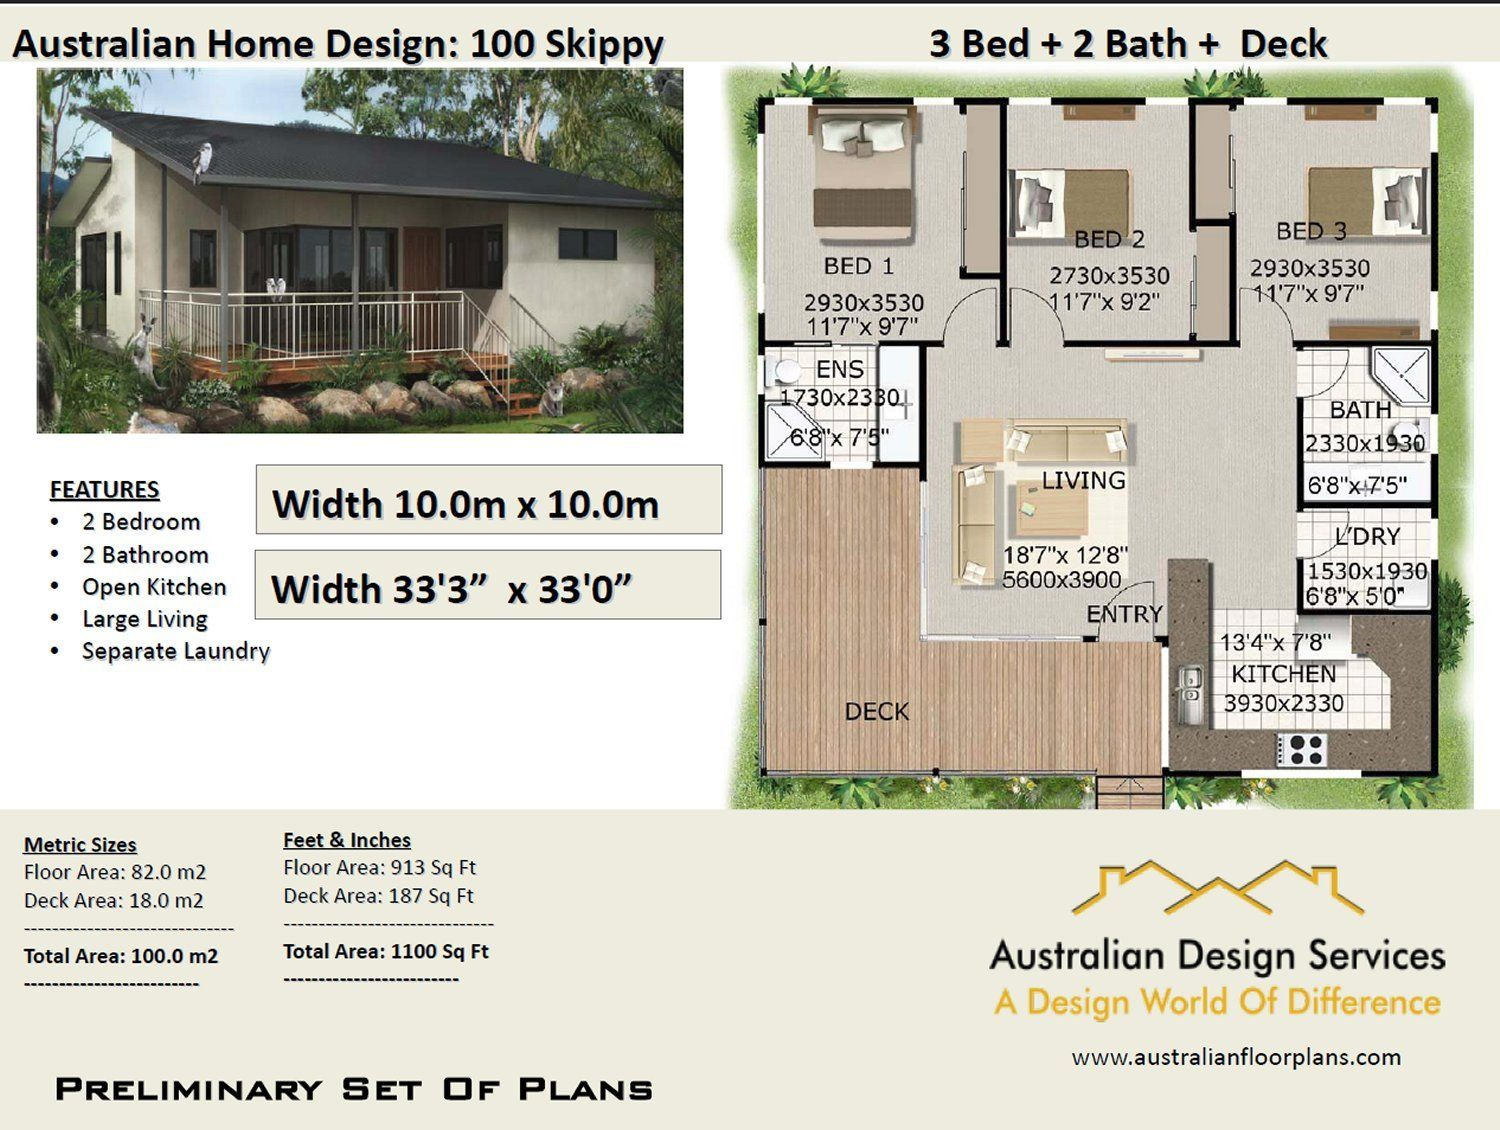 3 Bedroom Country Style House Plan Australia 1100 Sq Foot Etsy House Plans Australia Country Style House Plans Free House Plans